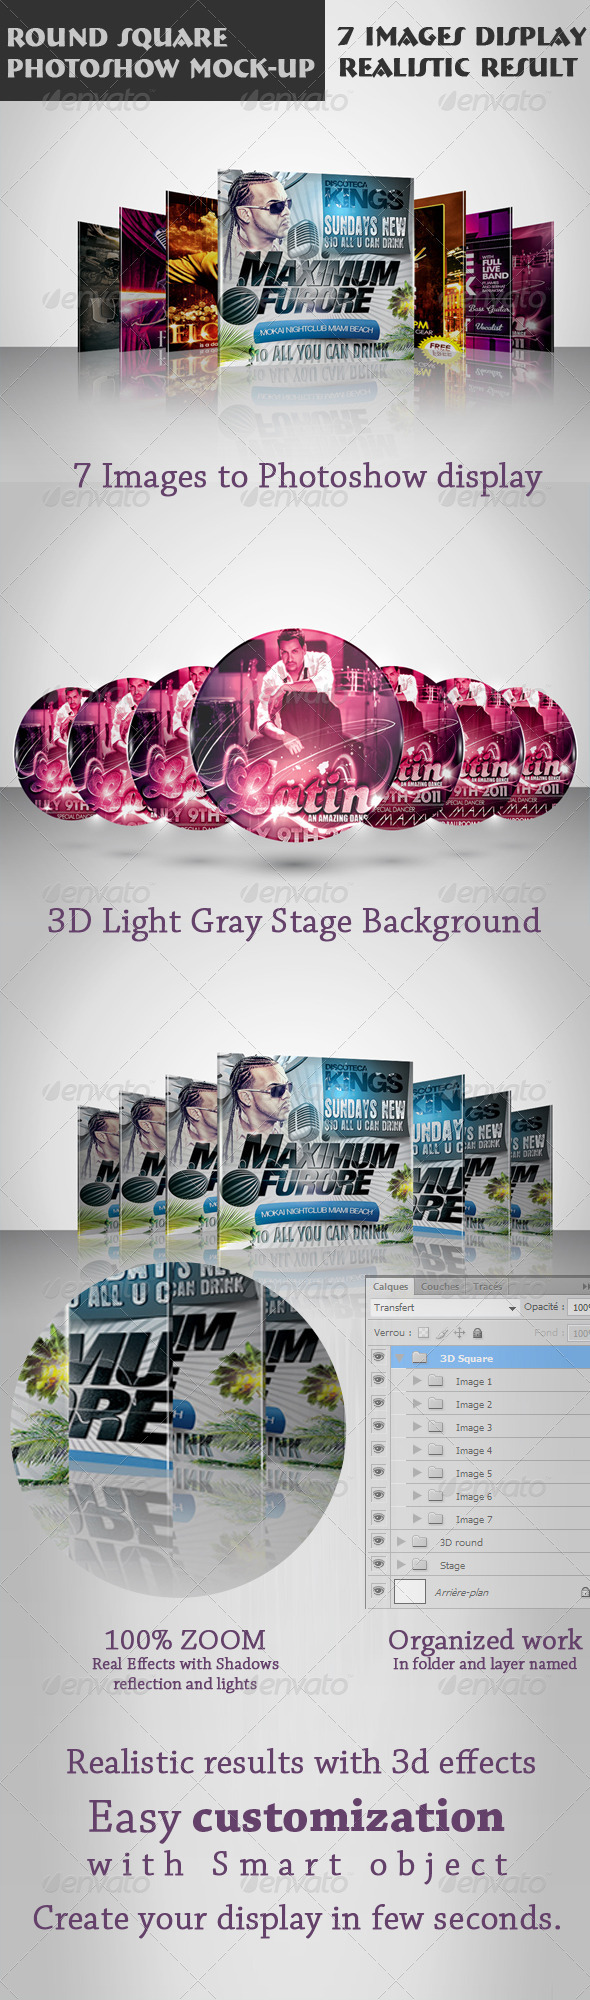 Round Square Photoshow Mock-up - Miscellaneous Displays